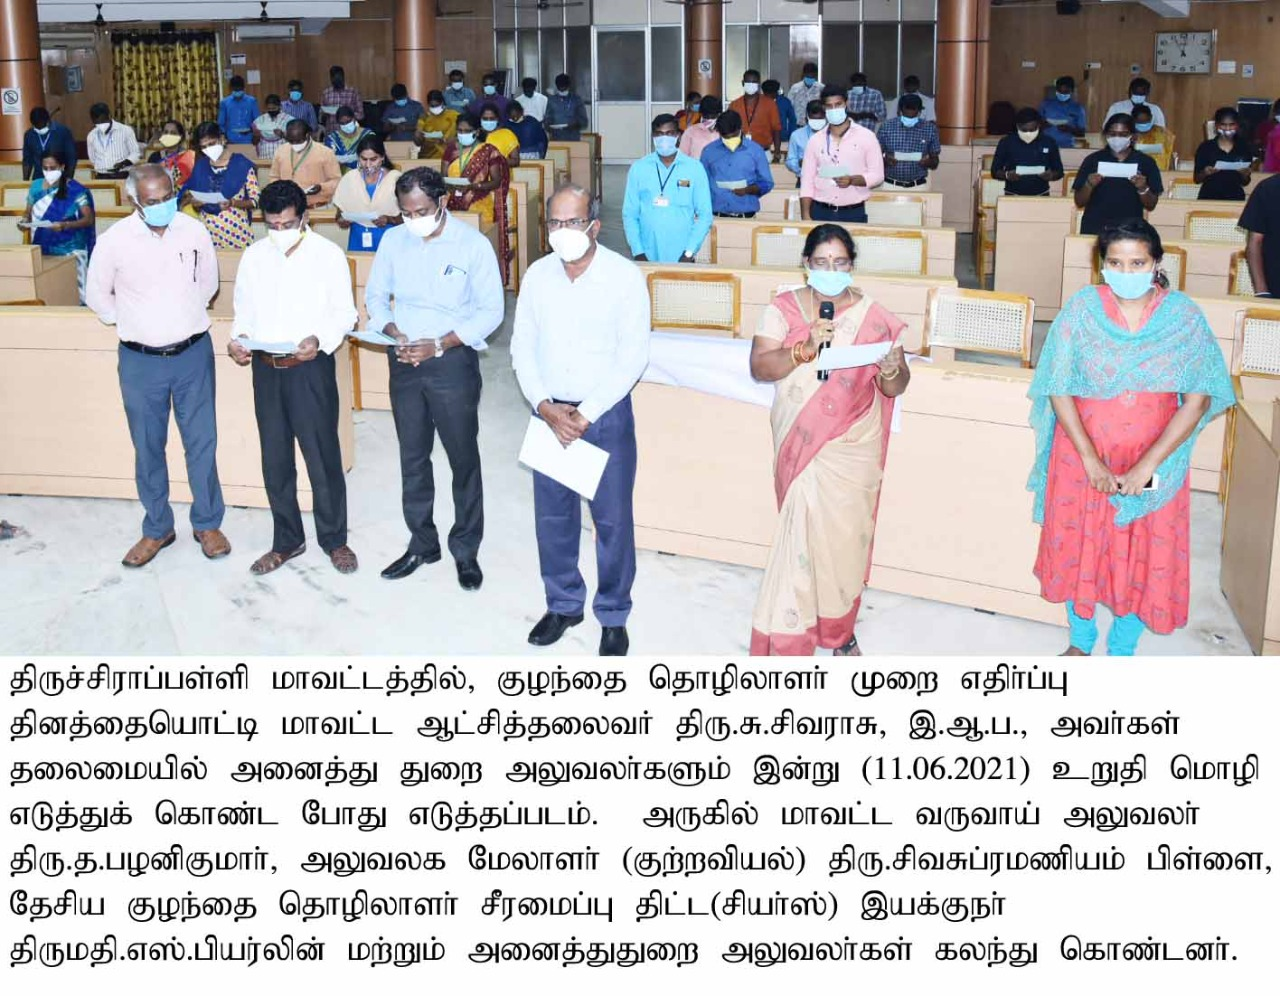 District Collector Administered the Anti Child Labour day pledge to the officials at Collectorate on 11-06-2021